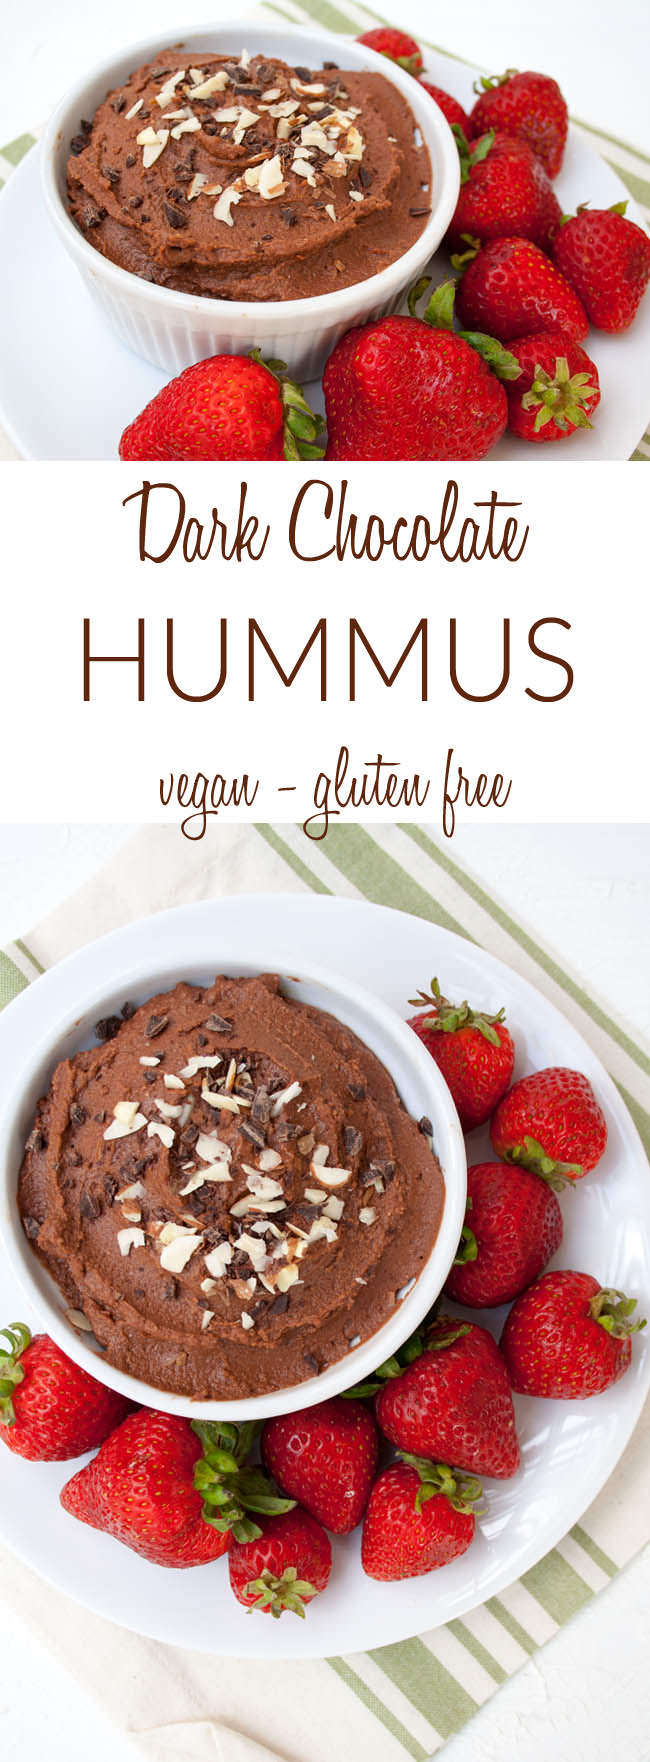 Dark Chocolate Hummus (vegan, gluten free) - This healthy dessert dip combines two great snacks into one. It can be used as a frosting or eaten by the spoonful!